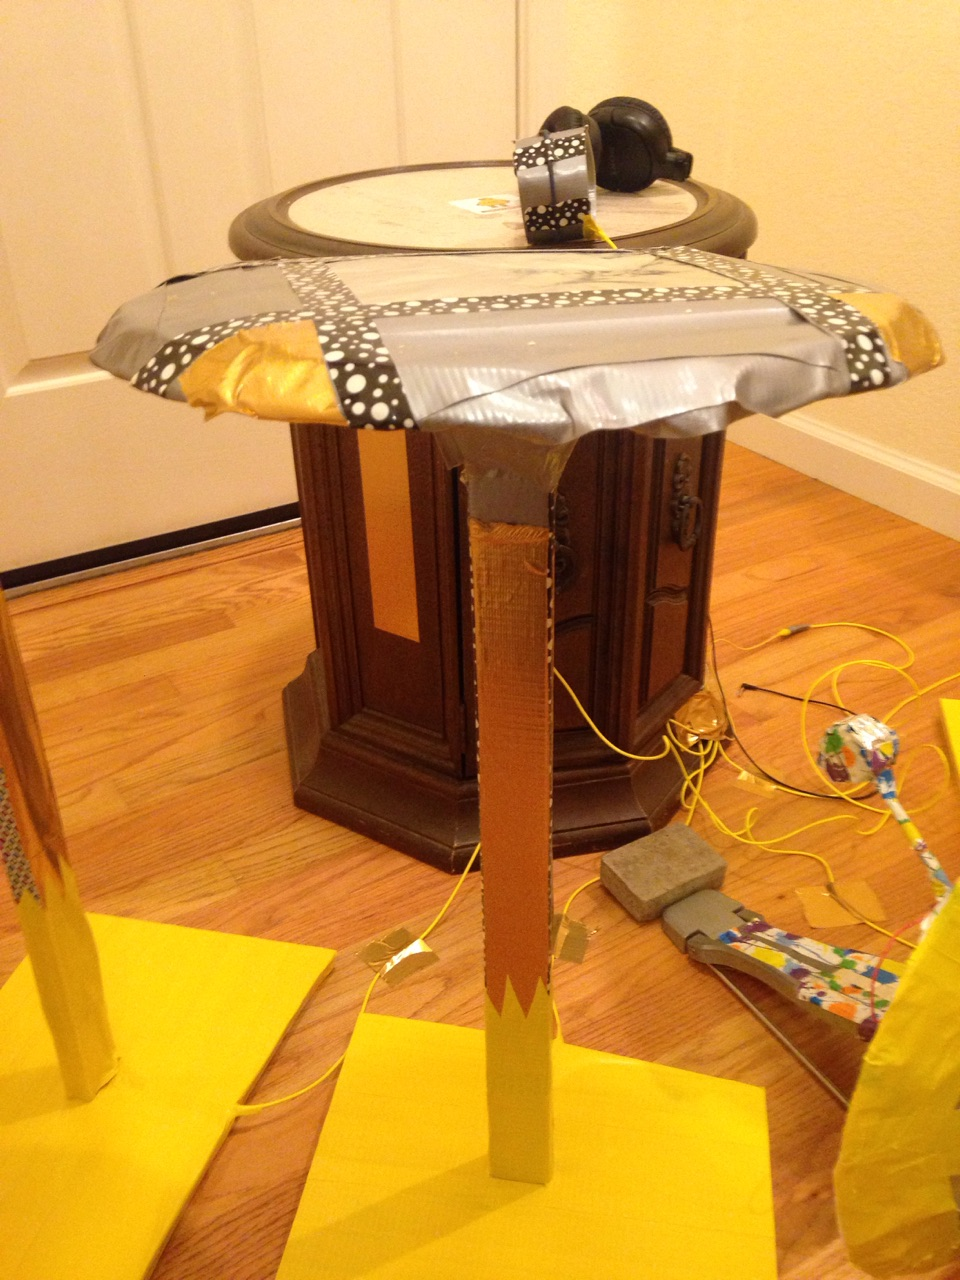 Picture of Build the Drum/Cymbal Stands From Scrap Wood and Duct Tape